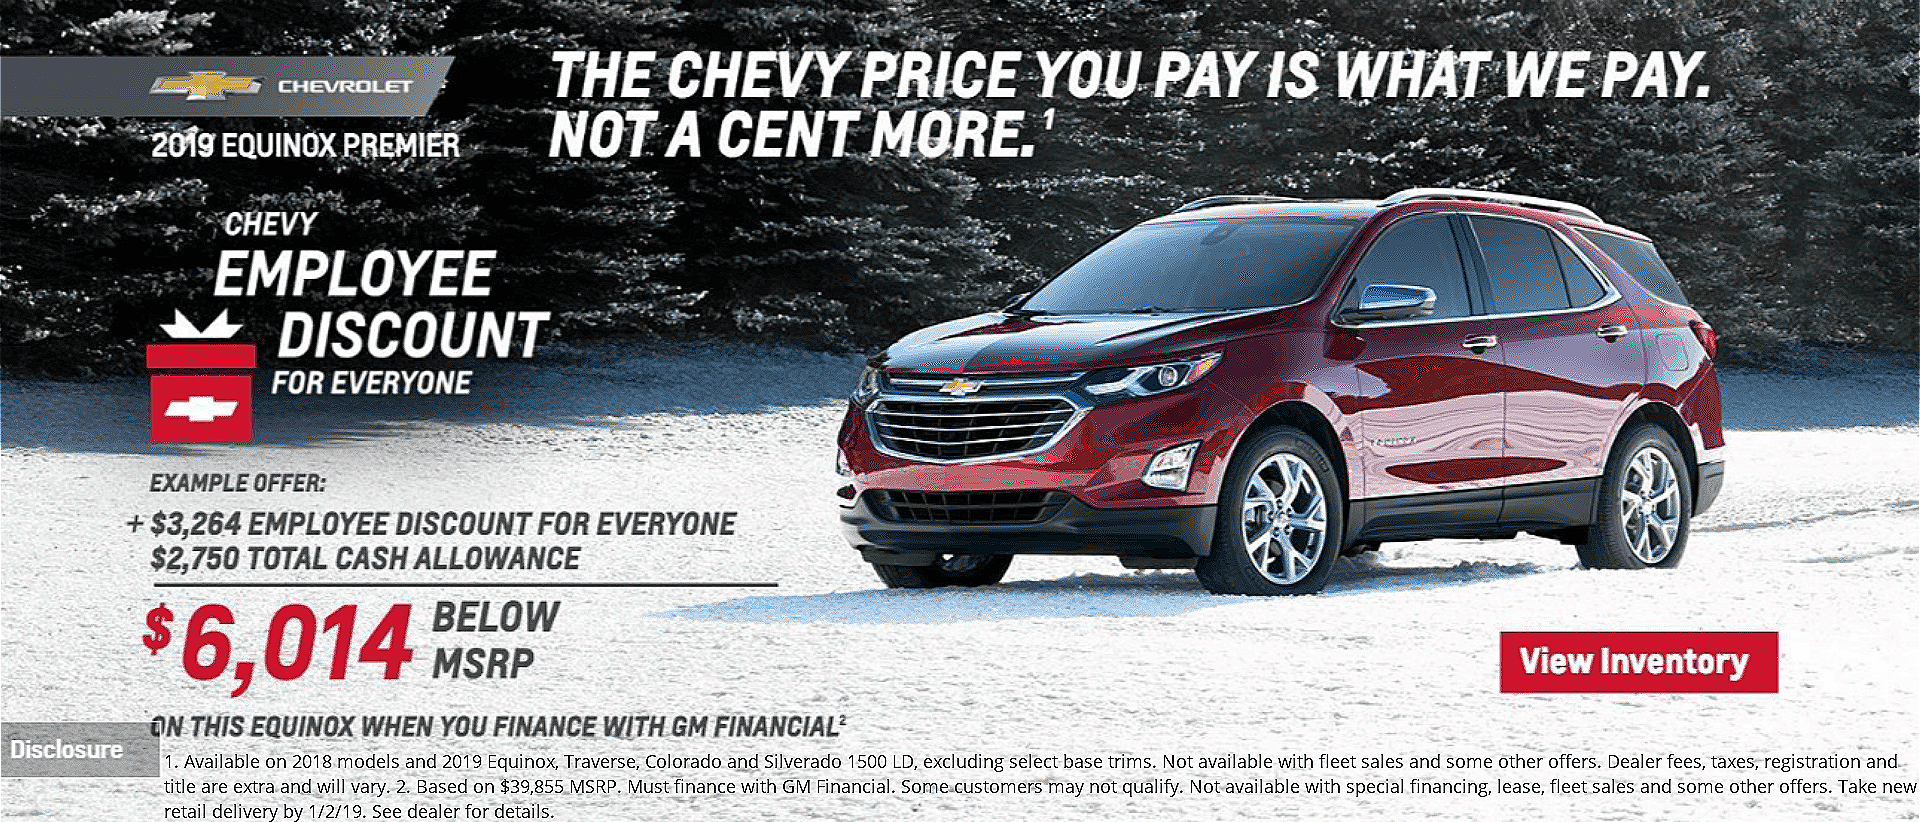 Chevy Employee Pricing for Everyone at Dimmitt Chevrolet in Clearwater, FL.